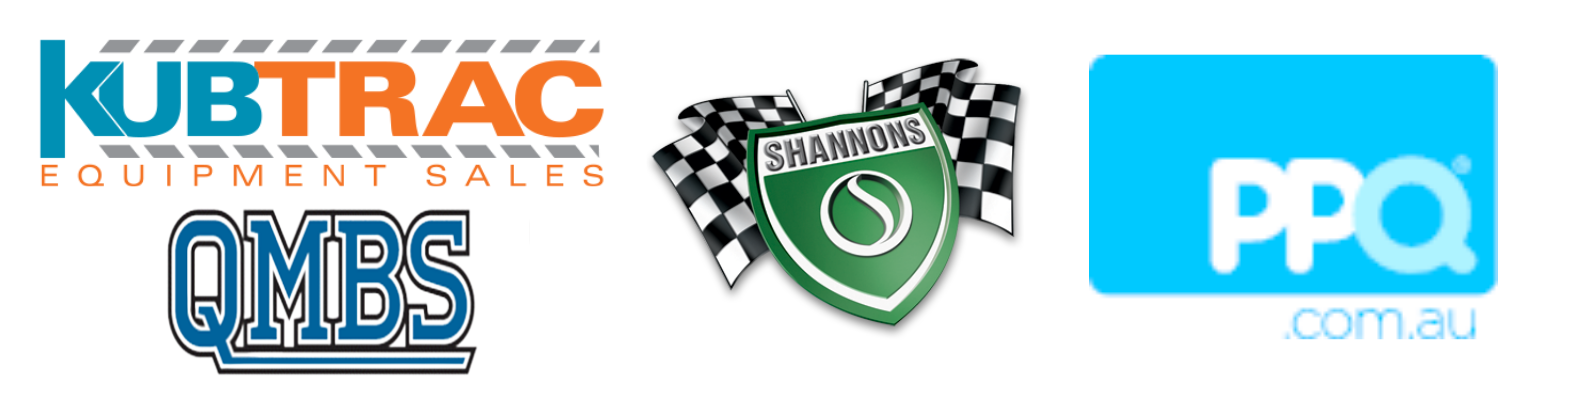 kubtrac Shannons QMBS Personalised Plates Logos